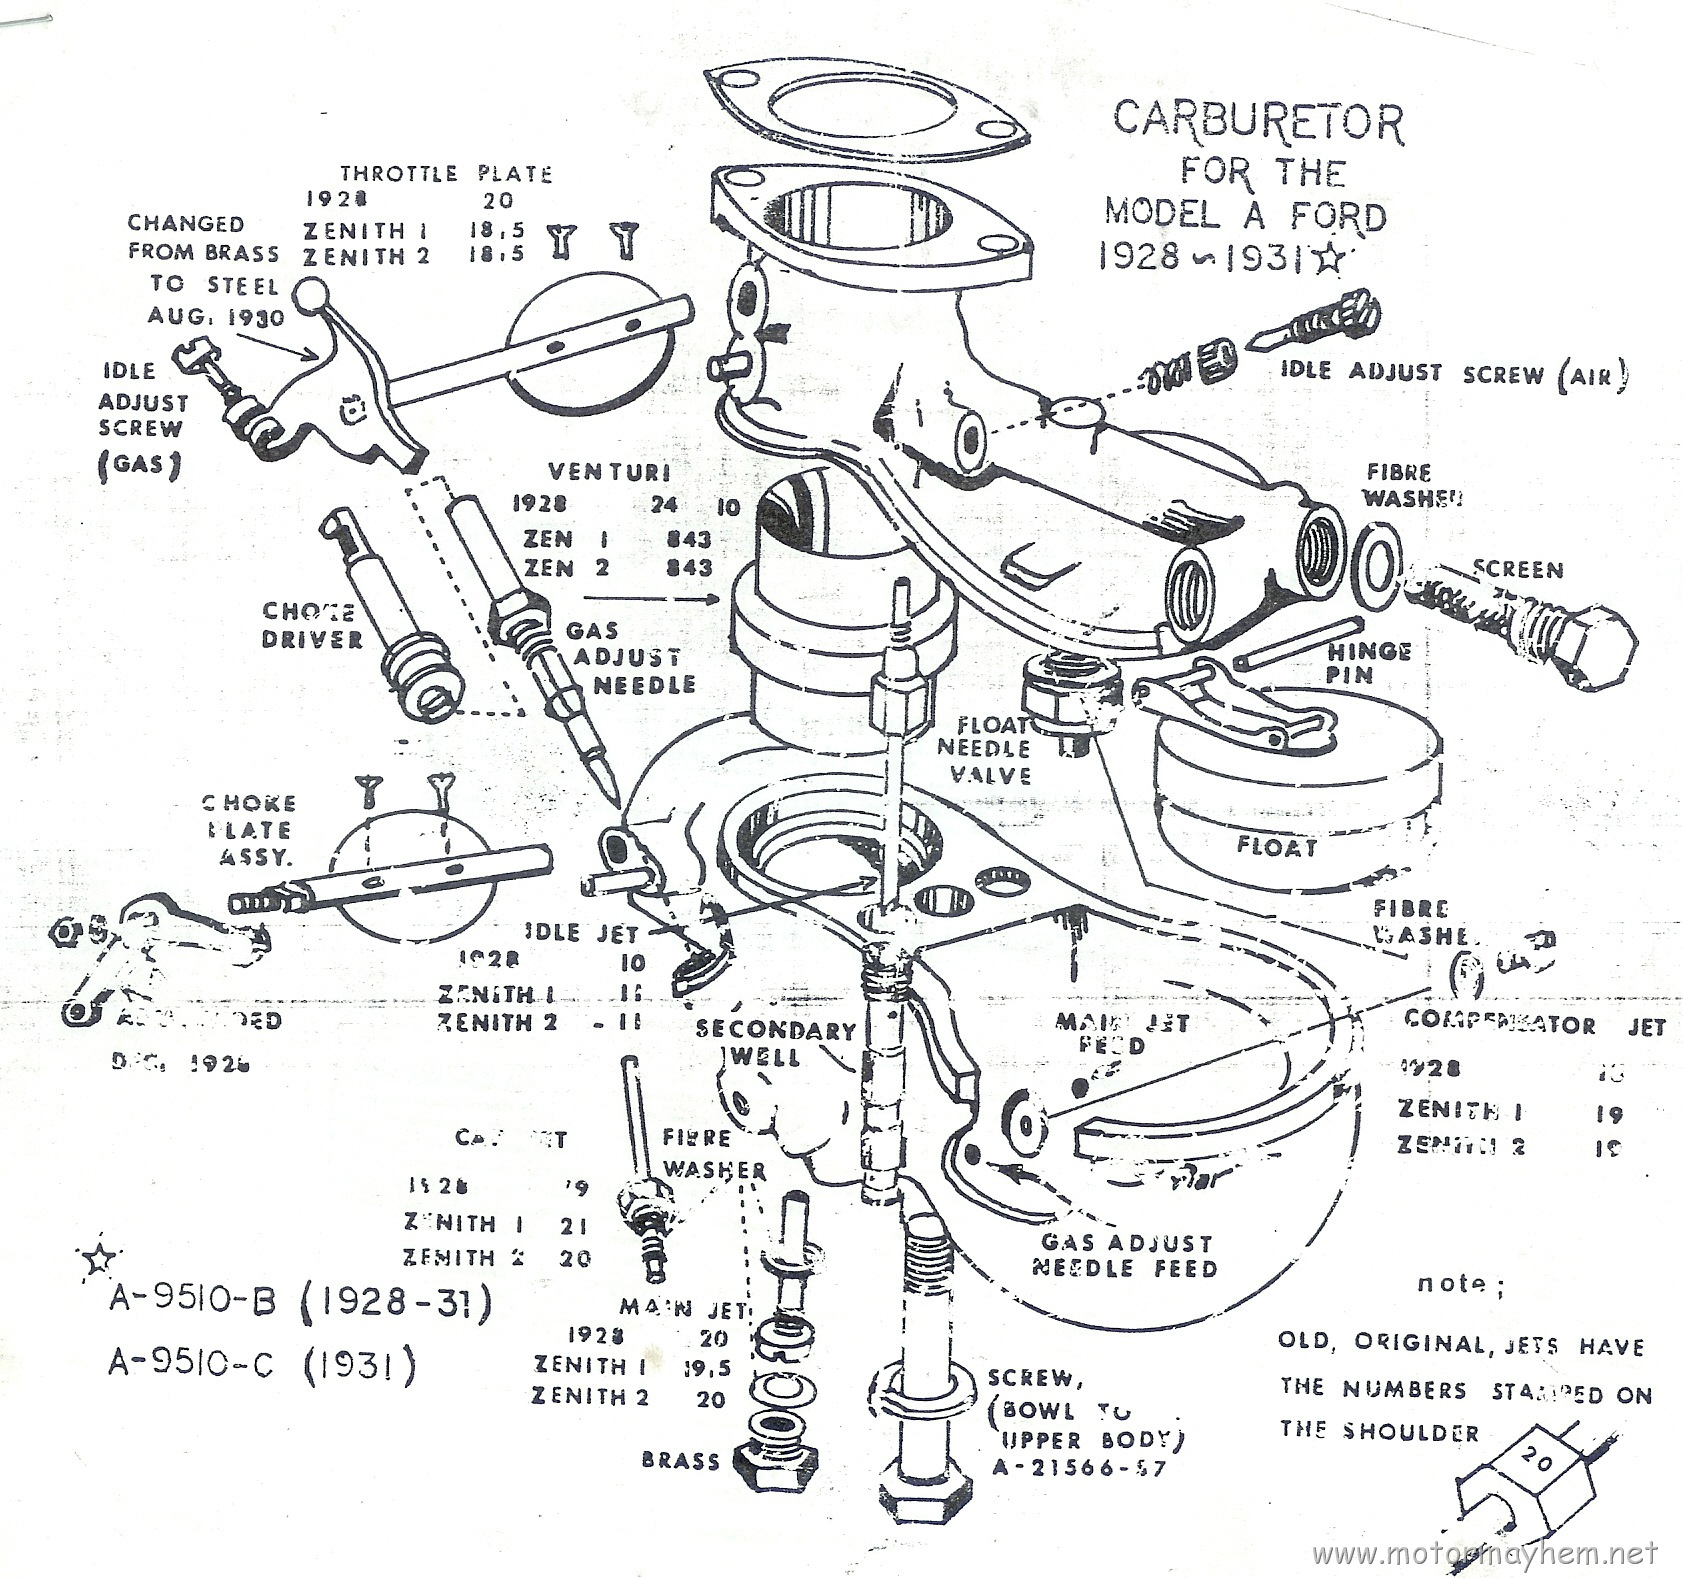 Model A Ford Engine Diagram